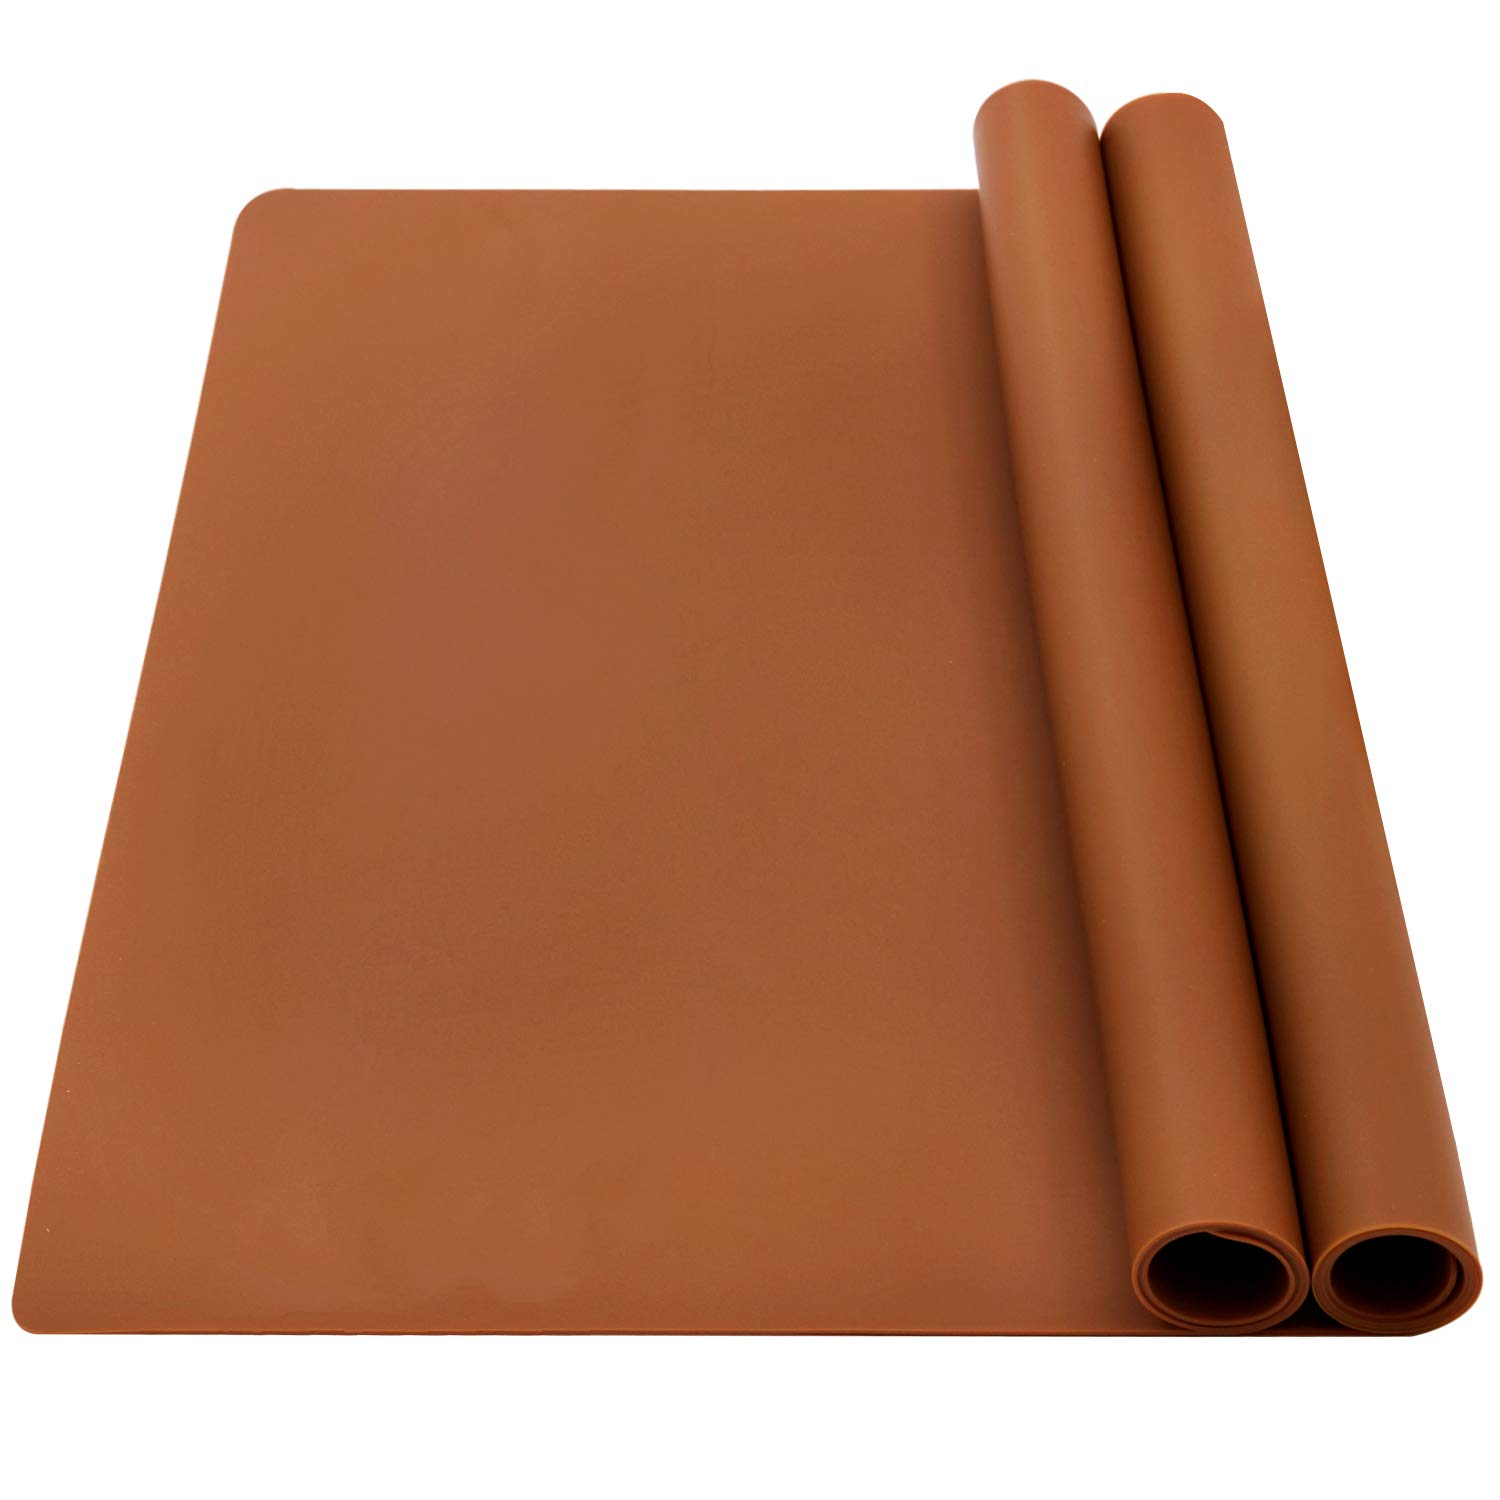 "wellhouse 23.6"" by 15.7"" Extra Large Mulitpurpose Silicone Nonstick Pastry Mat Countertop Protector Heat Resistant Nonskid Table Mat(Coffee)"